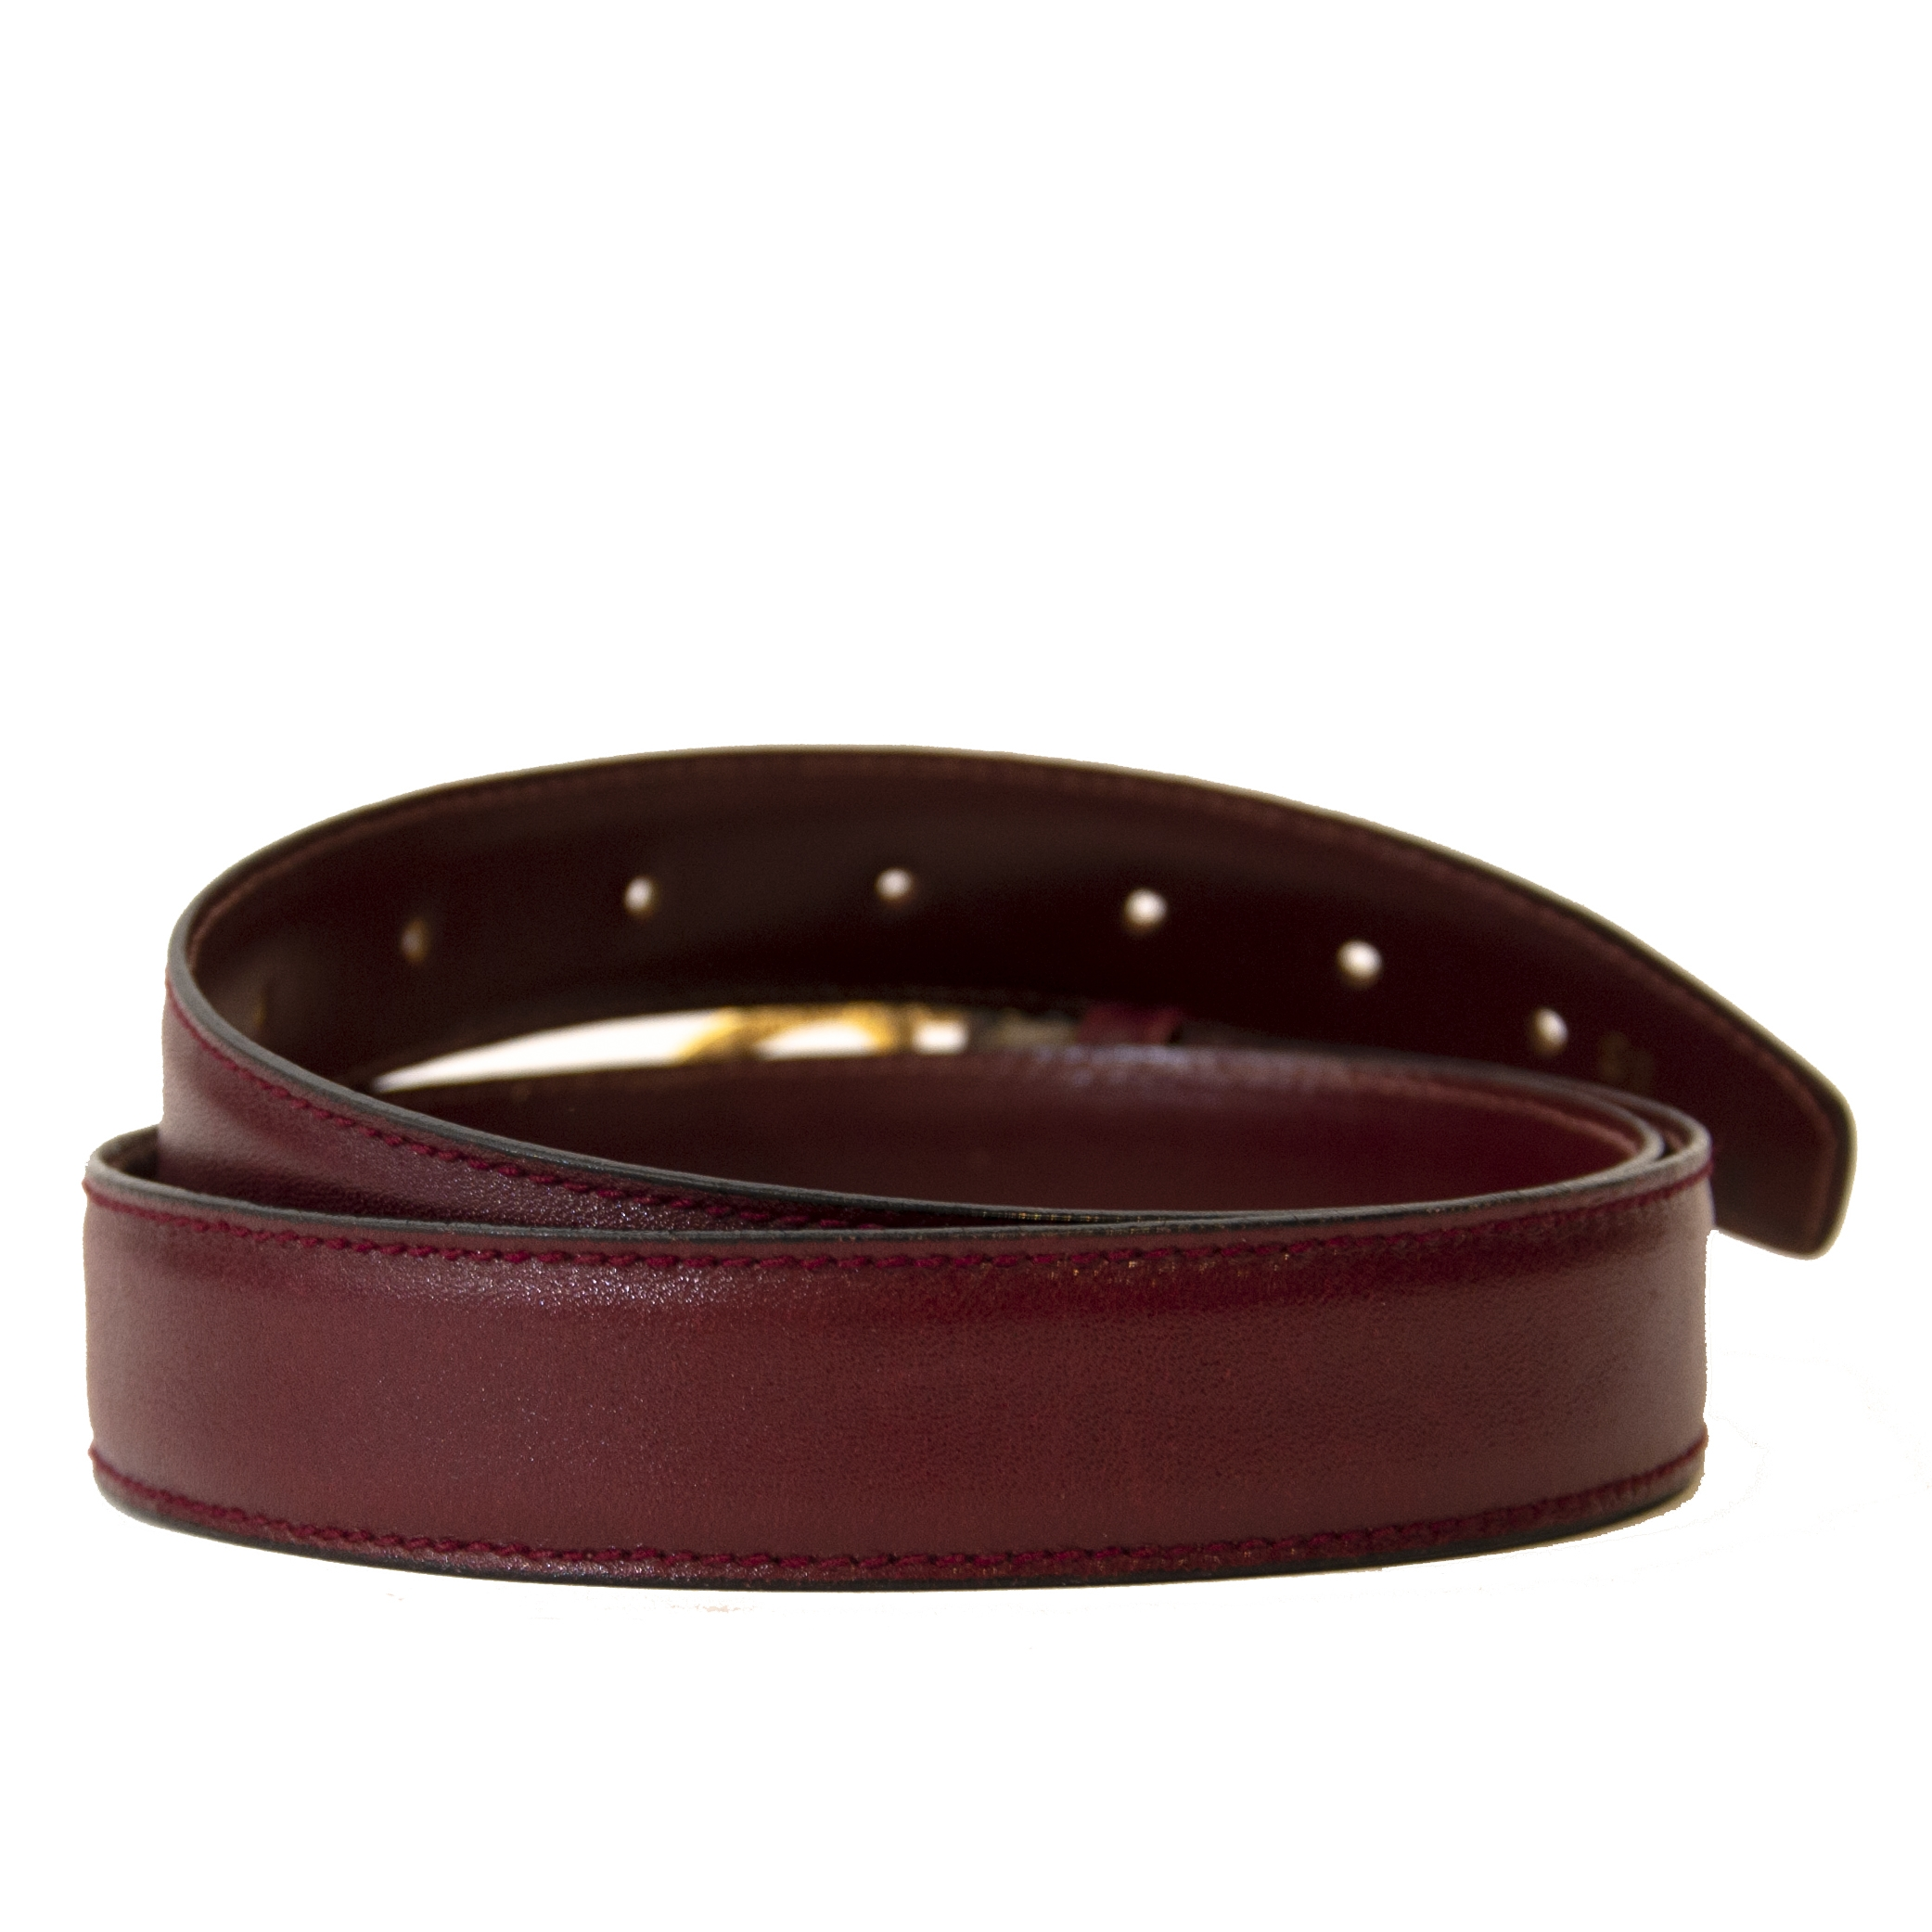 Authentic second-hand vintage Gucci Burgundy GG Belt buy online webshop LabelLOV